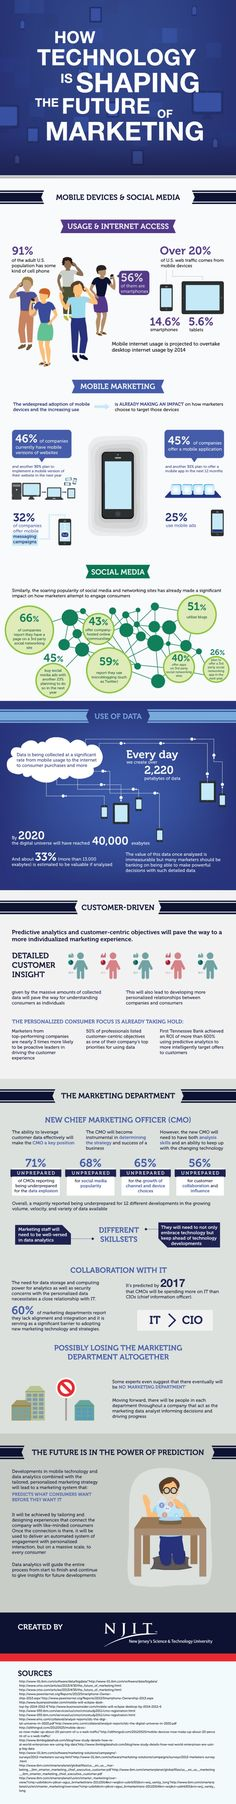 "DIGITAL MARKETING -         ""How #technology is Shaping the Future of #Marketing - #infographic""."